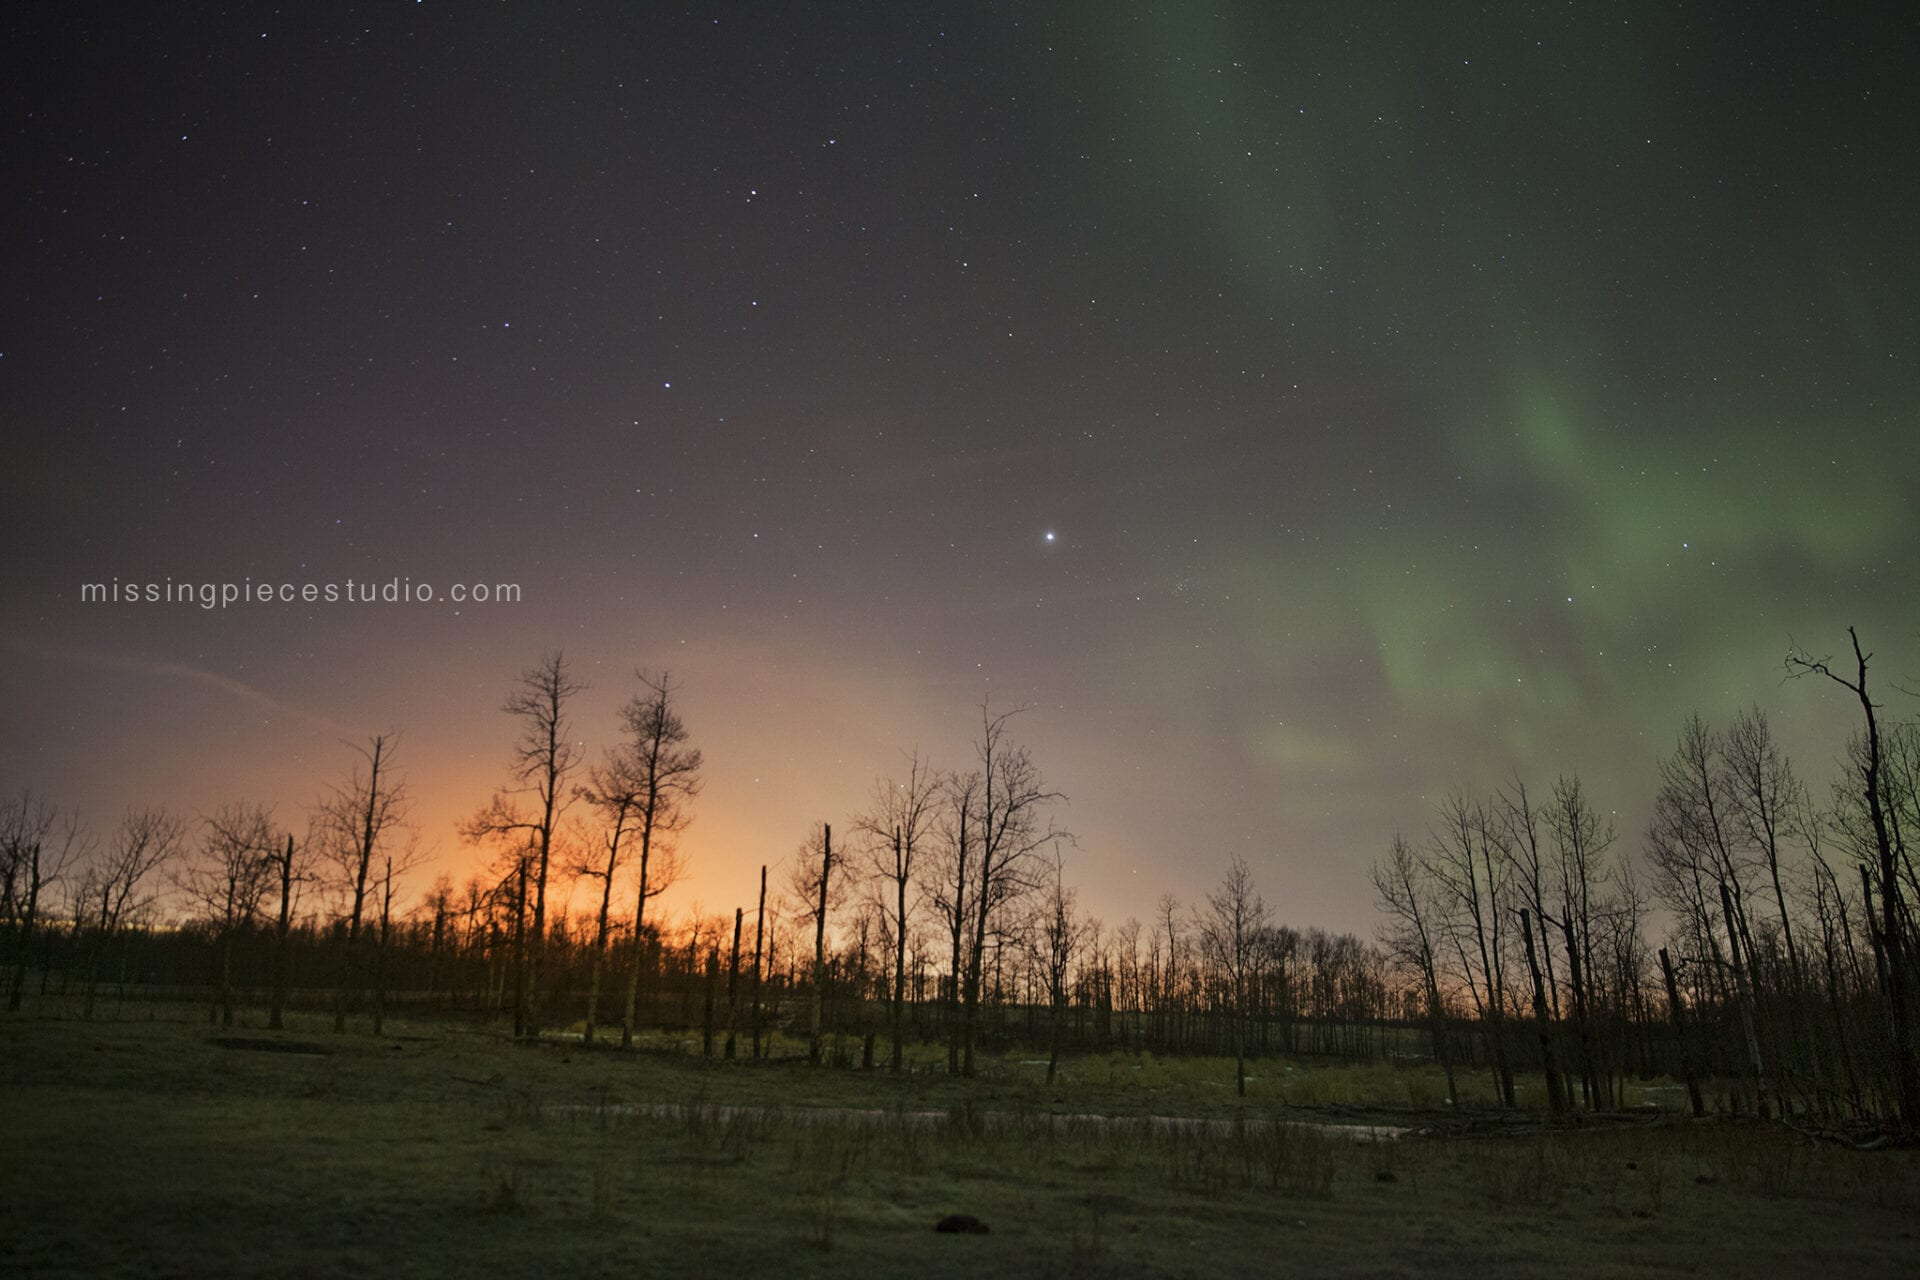 Northern lights (aurora borealis) taken on a cold winter night at Elk Island National Park